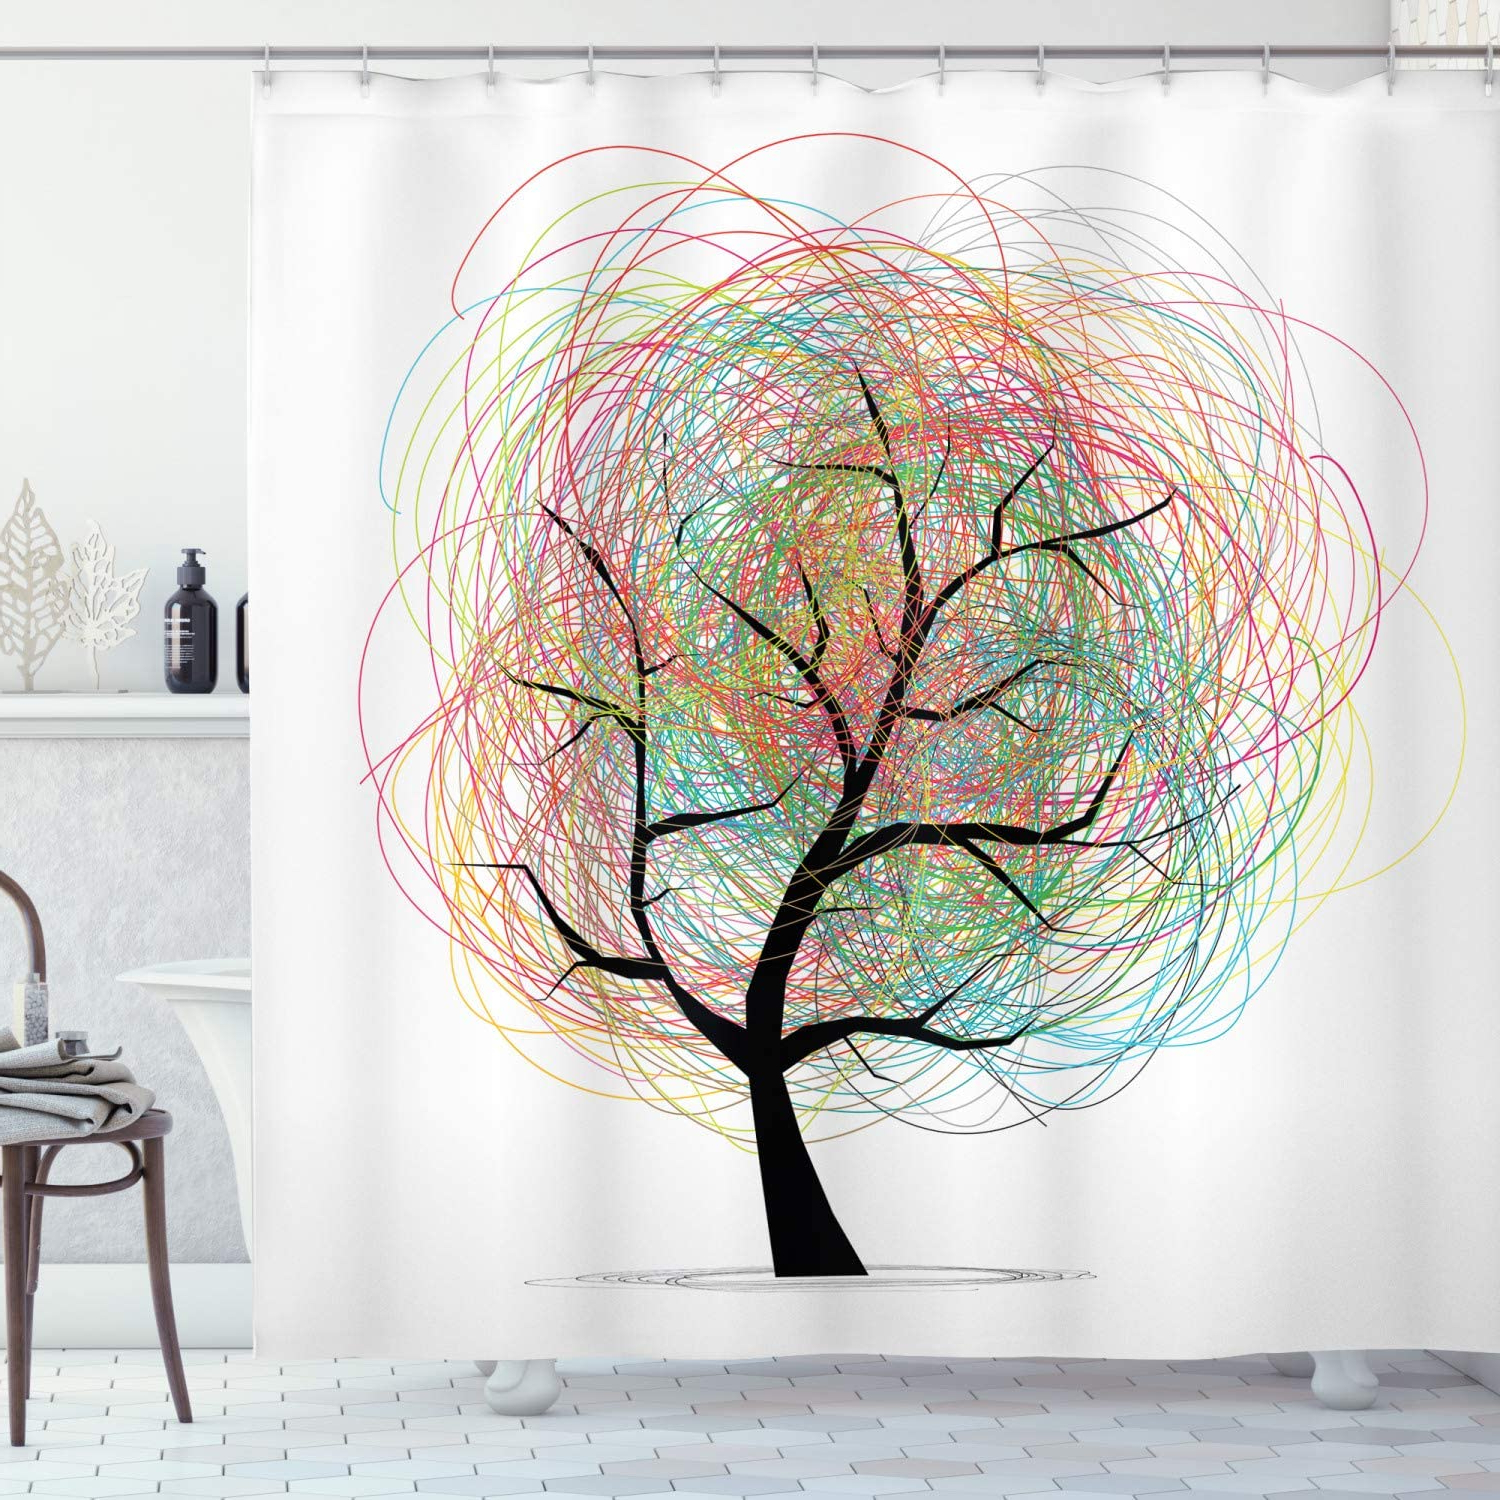 Blended Fabric Pastel Tree Of Life Wall Hangings With Best And Newest Ambesonne Tree Of Life Shower Curtain, Colorful Swirl Doodles Tree With Branches Funky Contemporary Illustration, Cloth Fabric Bathroom Decor Set With (View 7 of 20)